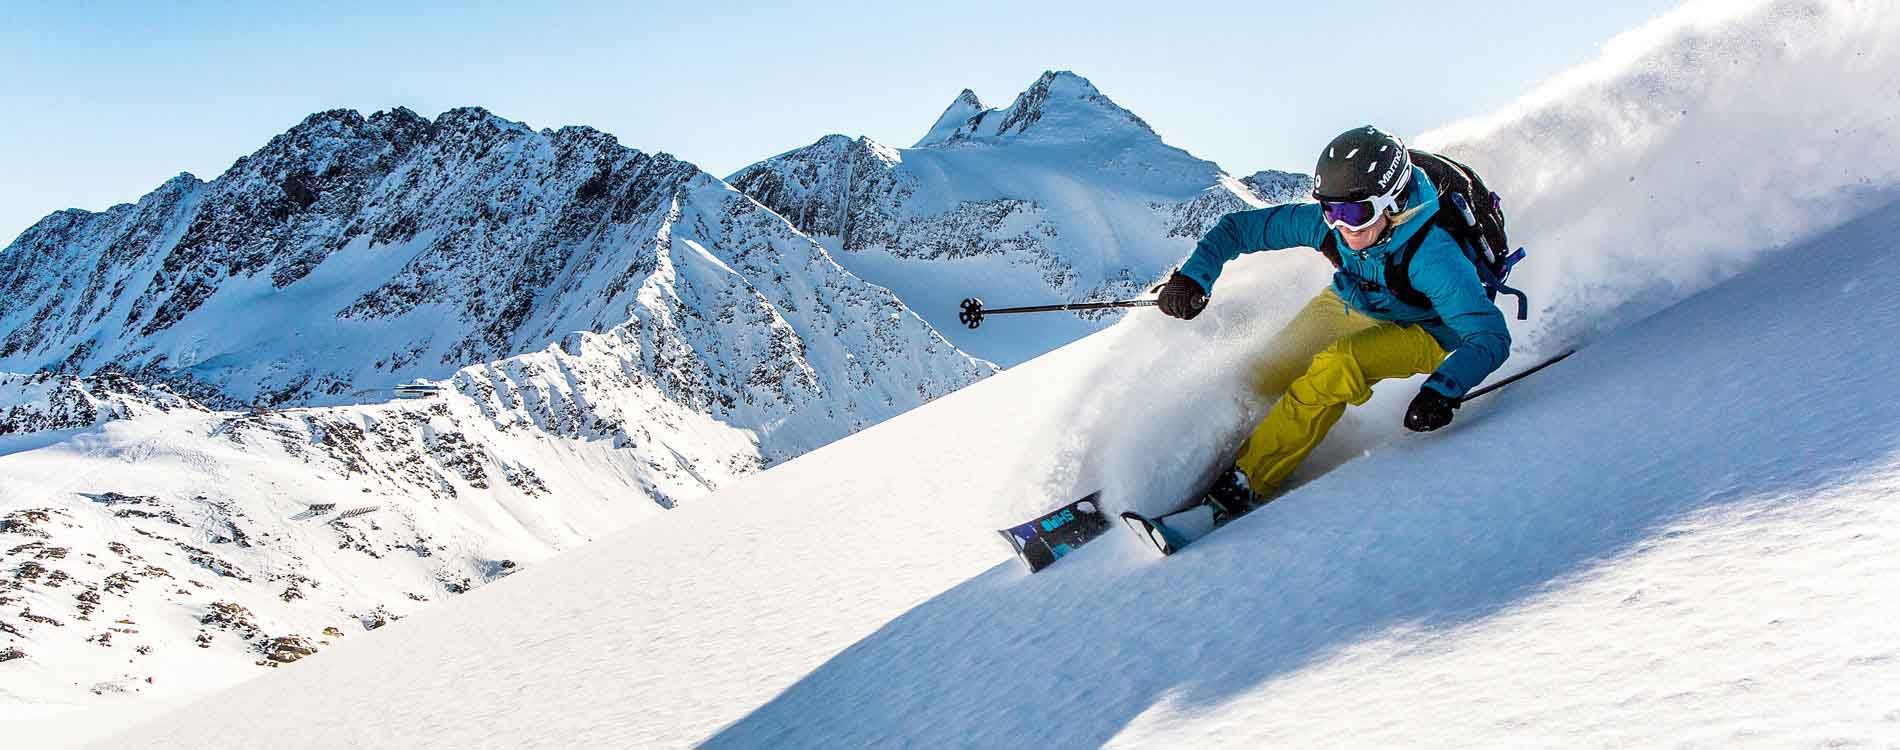 Training & Ski Fun by Franco Cavegn at Relais & Chateuax SPA-Hotel Jagdhof 5 Stars Luxury Stubai Valley Neustift Tyrol Austria